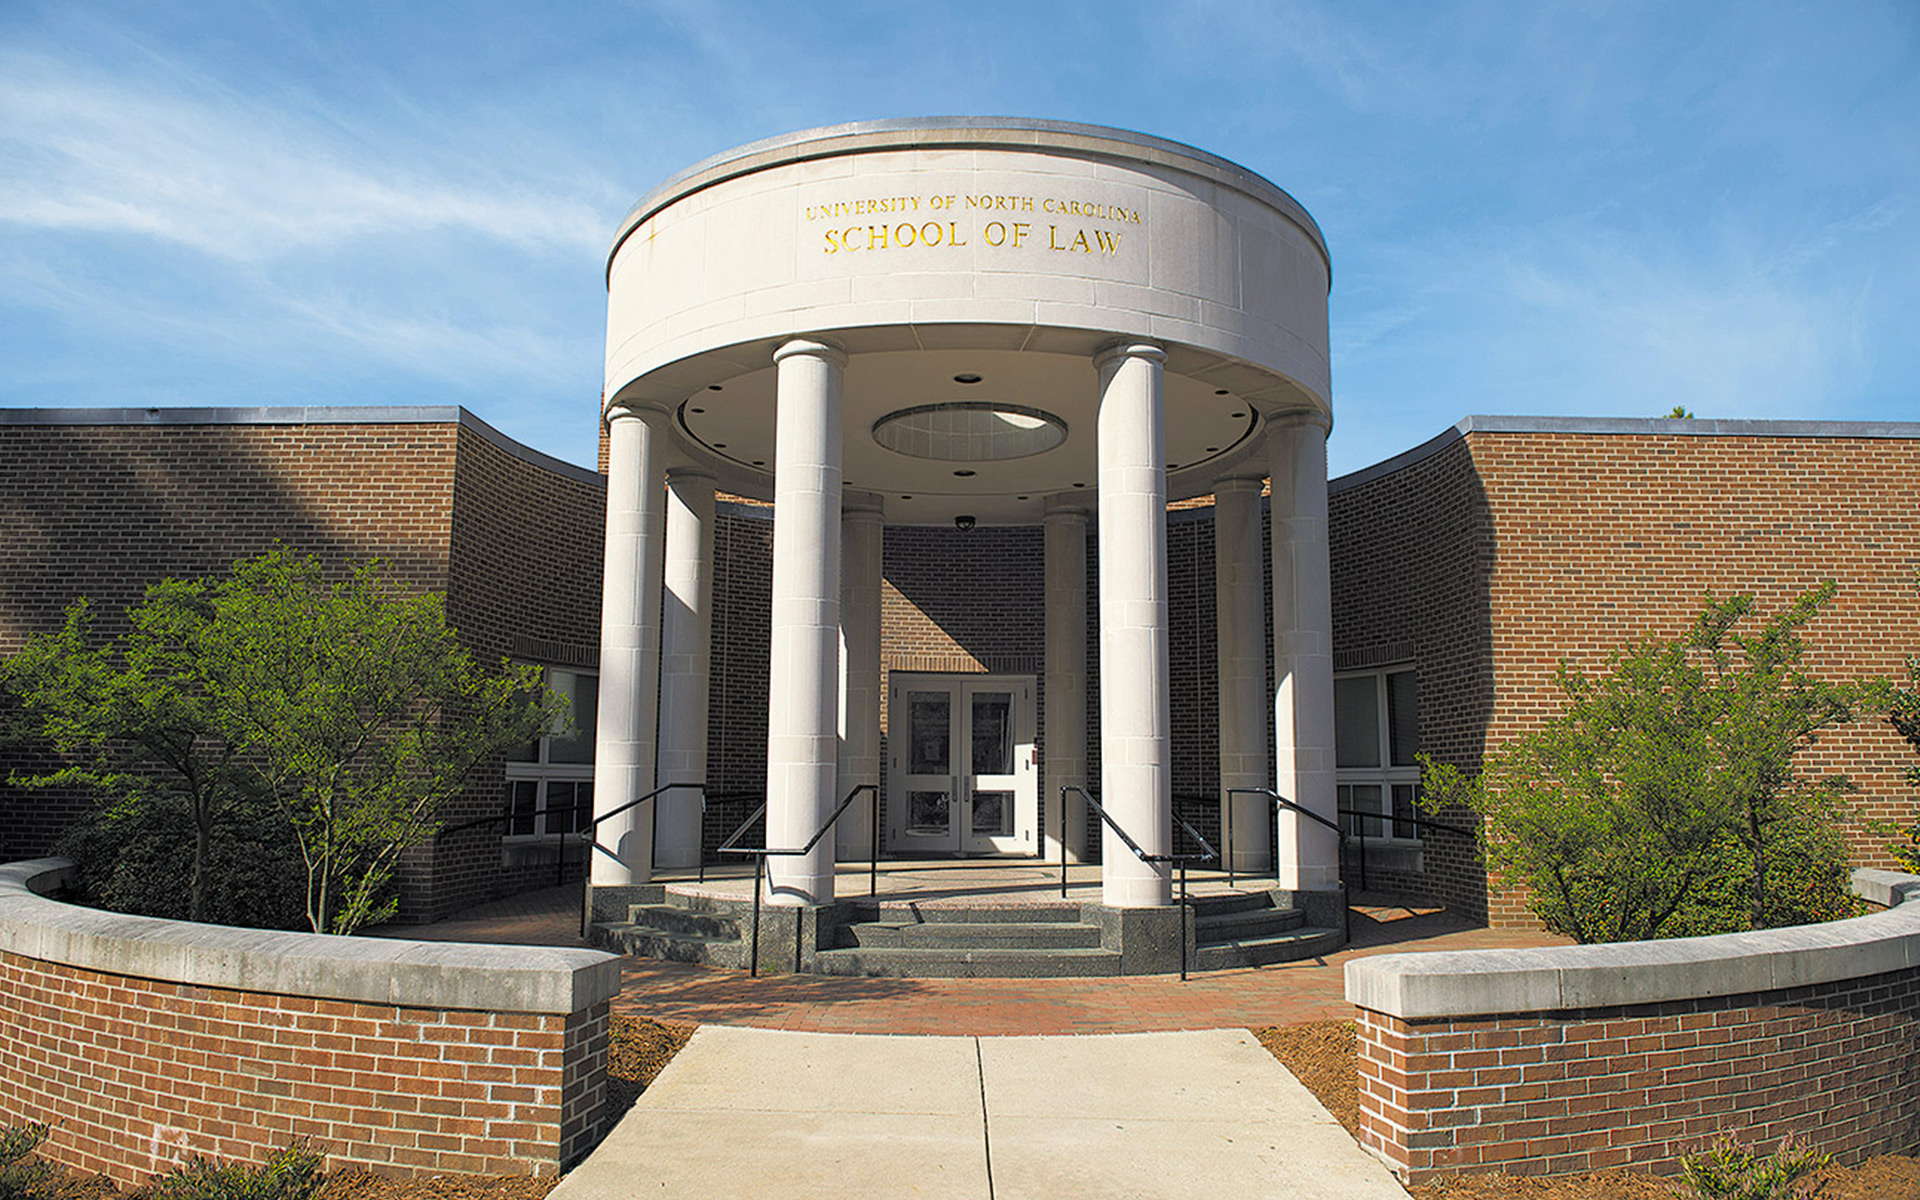 Extron XTP Systems and Annotator 300 Facilitate Courtroom Instruction at UNC School of Law